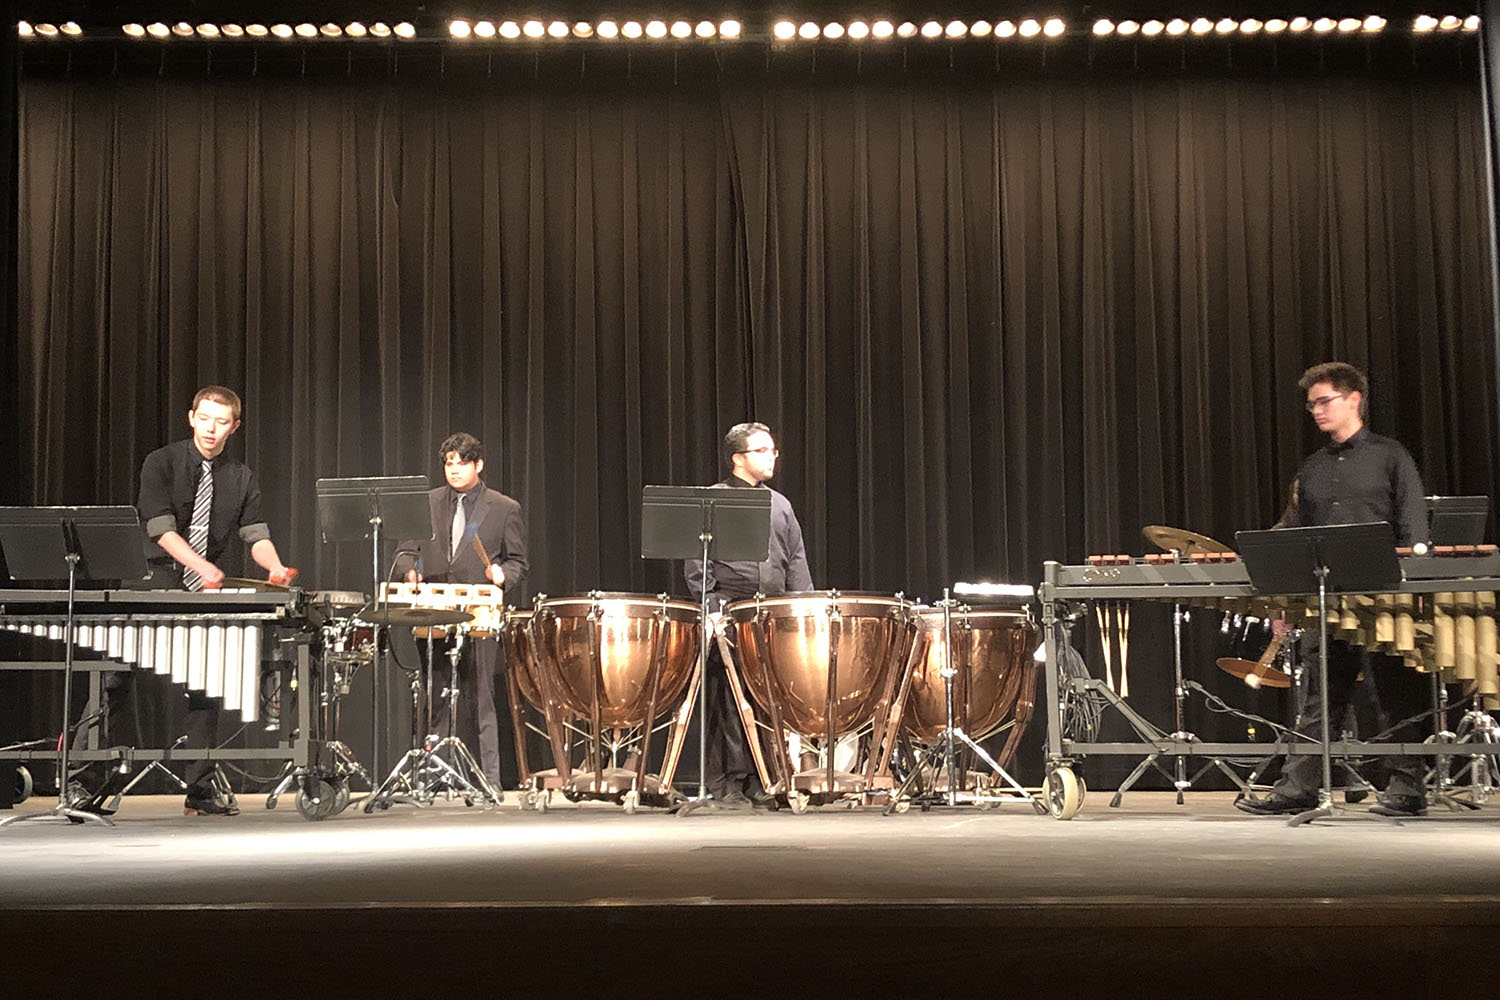 PERCUSSION: The last wind ensemble group to perform was a percussion feature. The members of this group are Chris Bissett, Sam Bippen, Connor Banden, Alex LaBanca, and Emma Smallen.